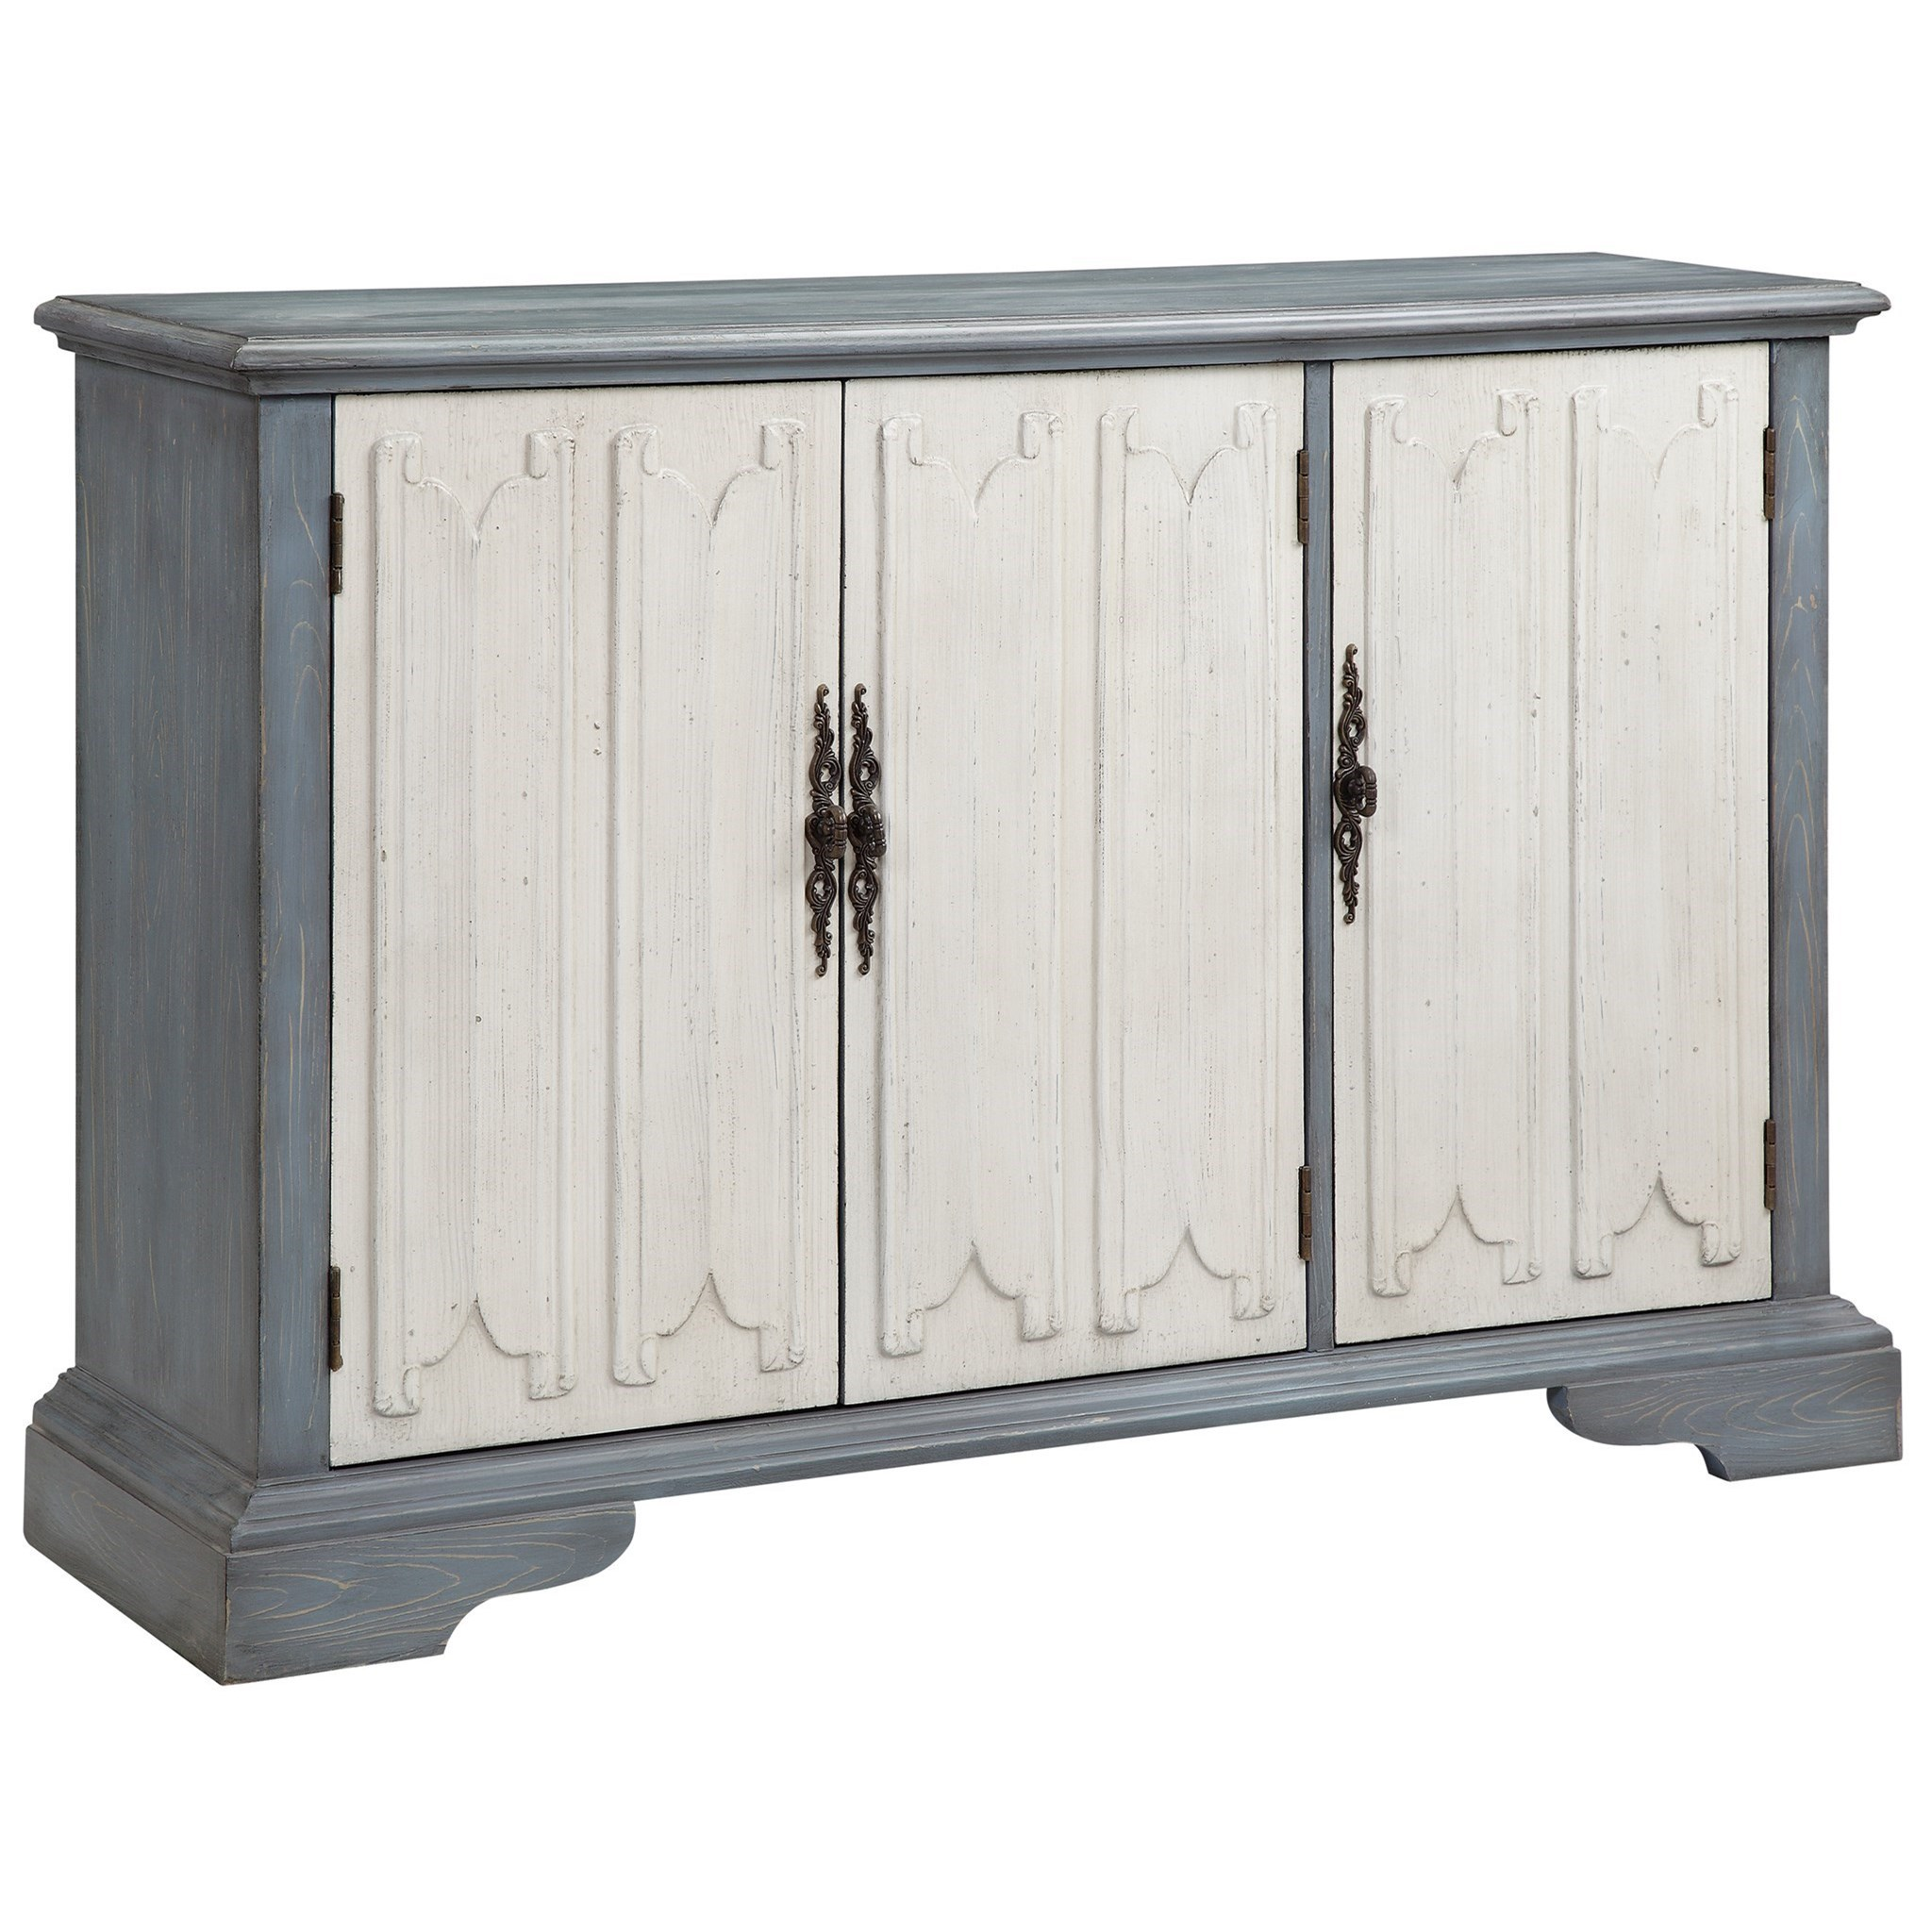 Cabinets 3 door cabinet morris home accent chests for Morris home